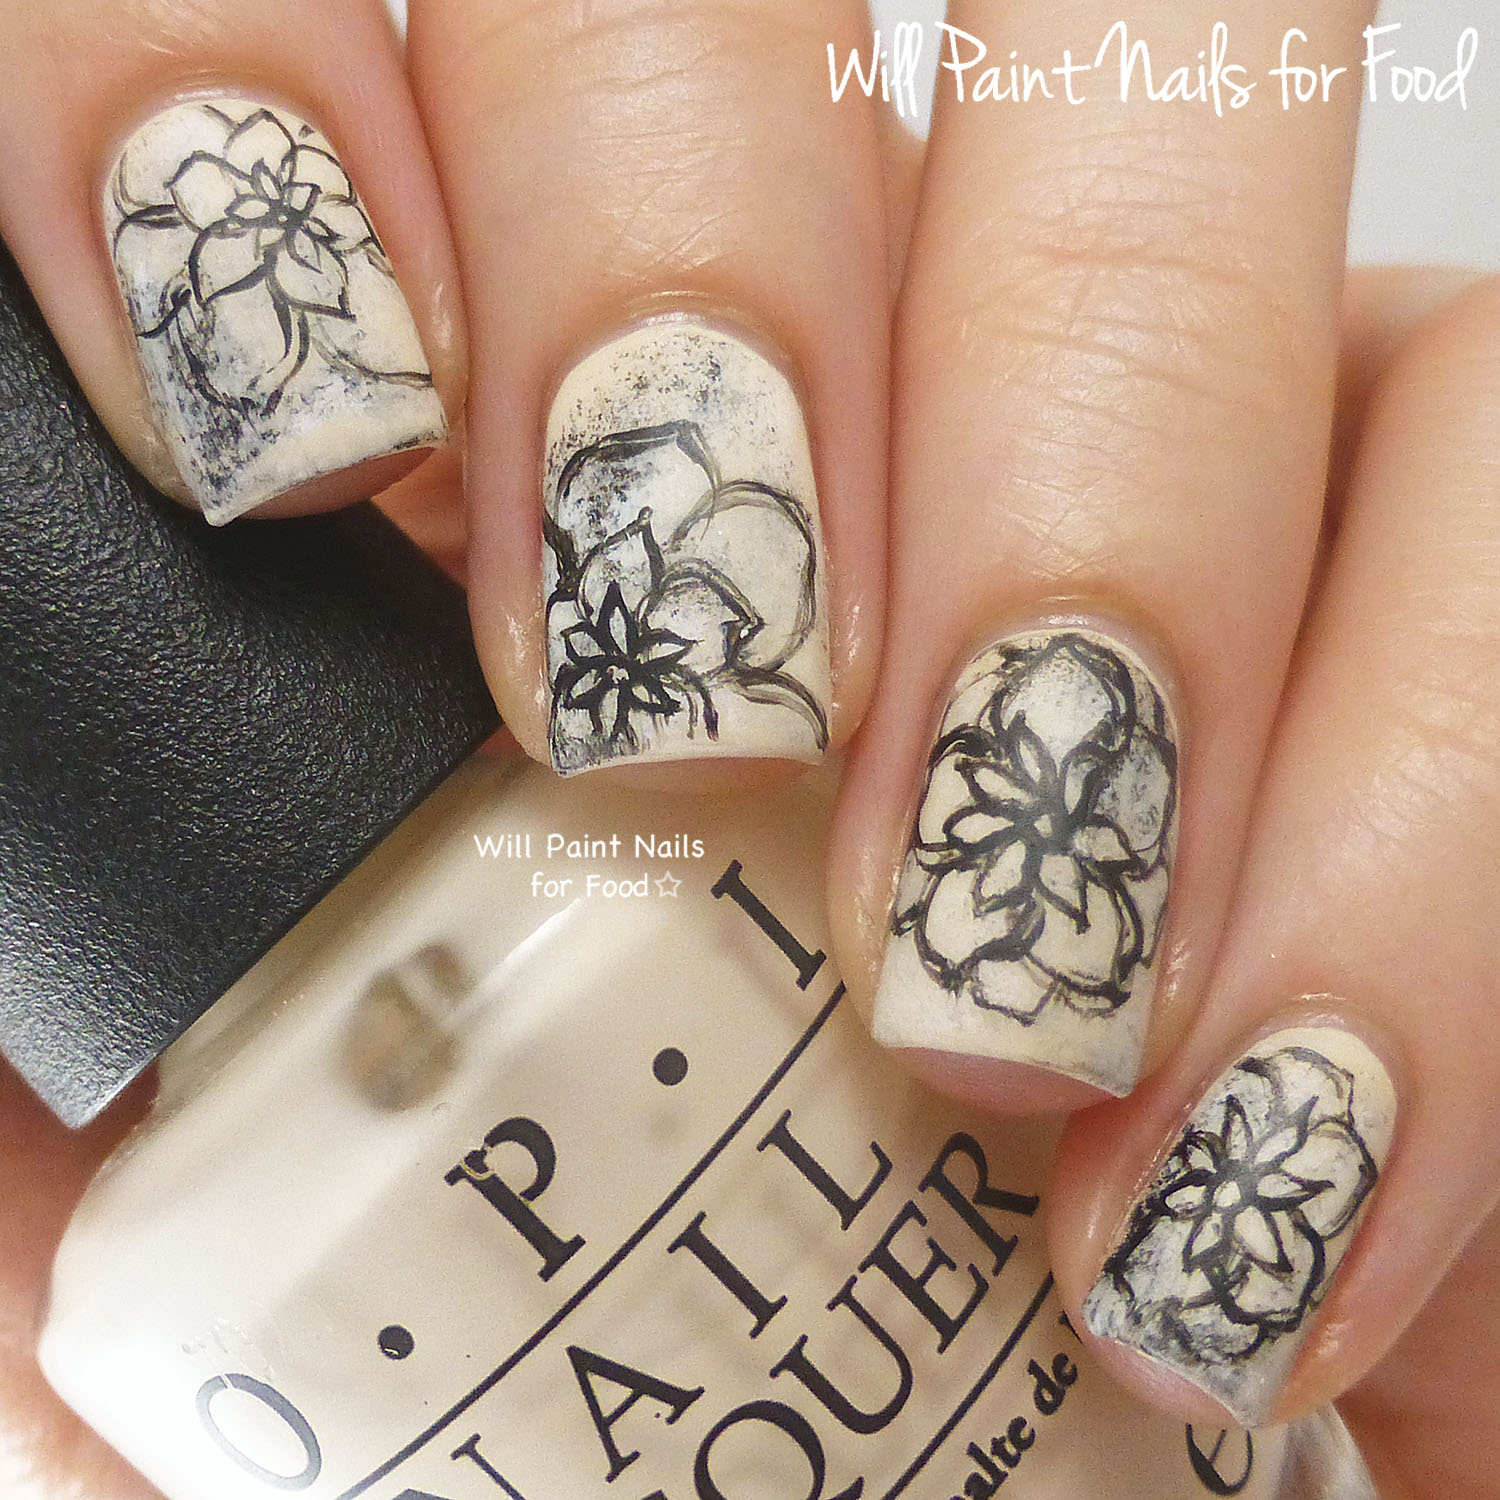 Freehand graphite flowers